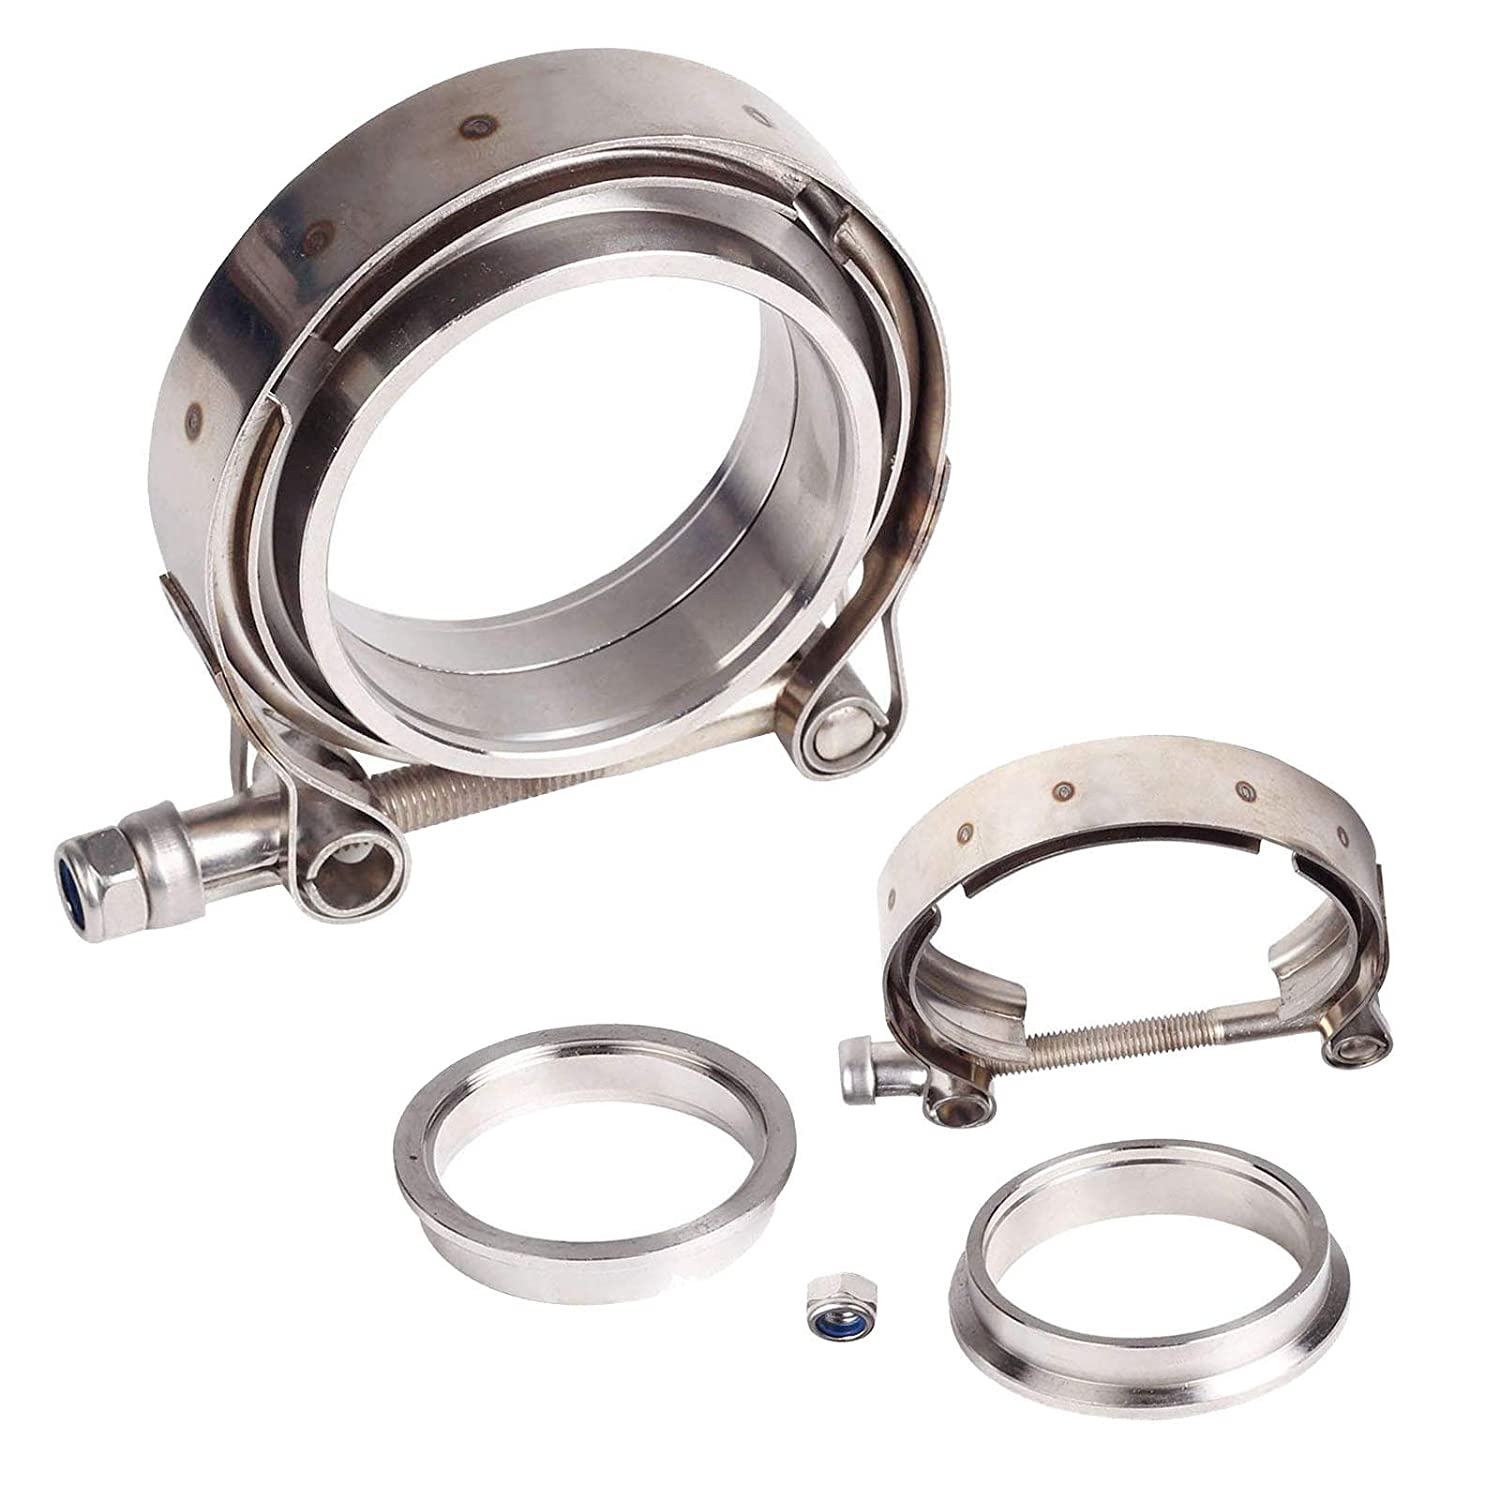 2.5' Inch V Band Clamp with Stainless Steel Flanges for Turbo, Downpipes,Exhaust Systems 2.5in 63mm SS Vband, V-Band Flange Kit blackhorseracing